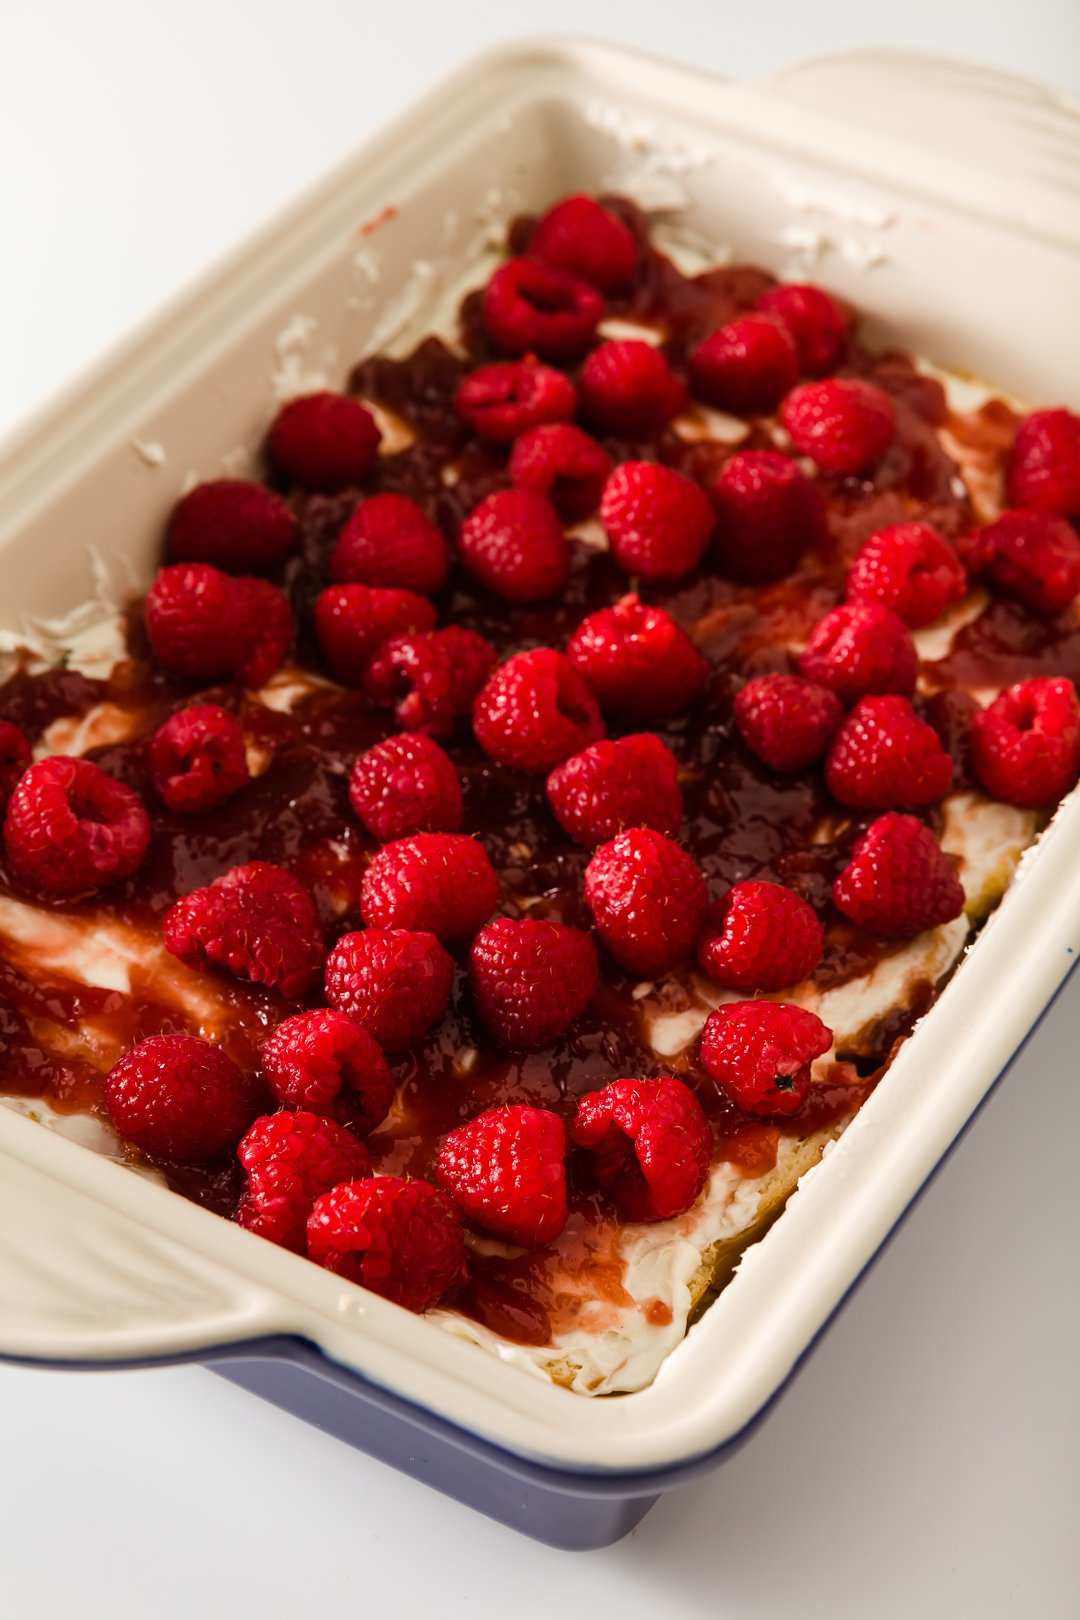 cream cheese, raspberry jam, and raspberries on top of bread in casserole dish